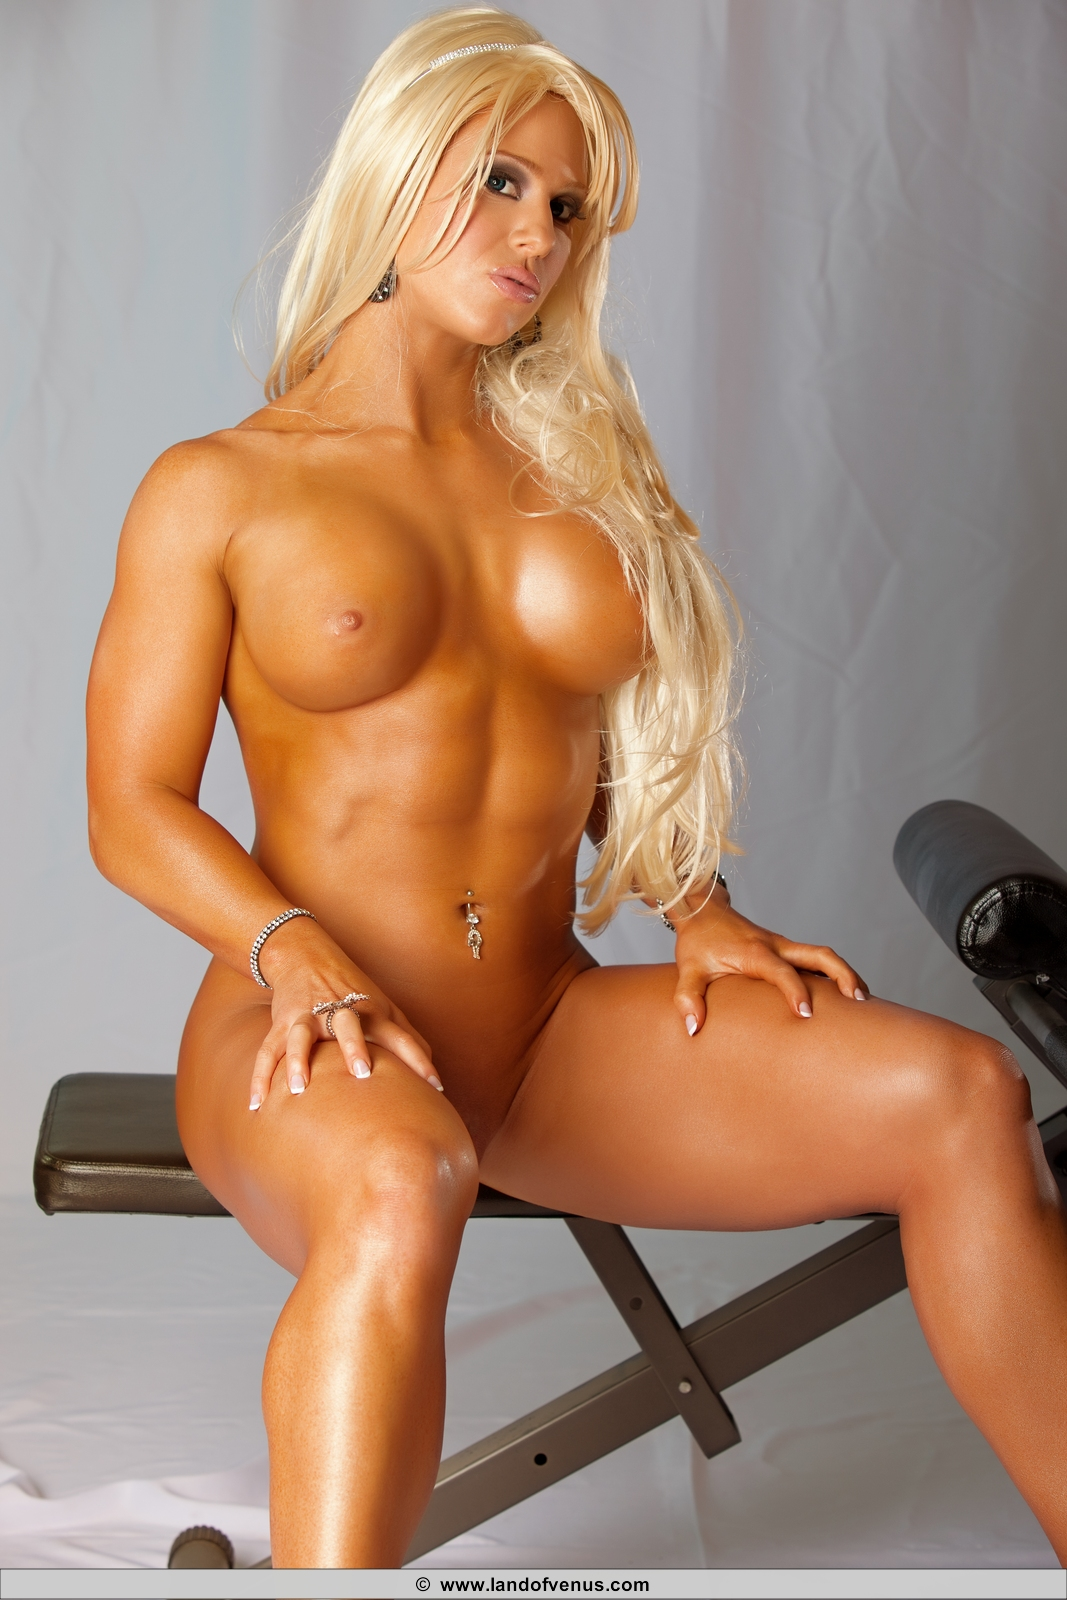 models Hot nude girl fitness